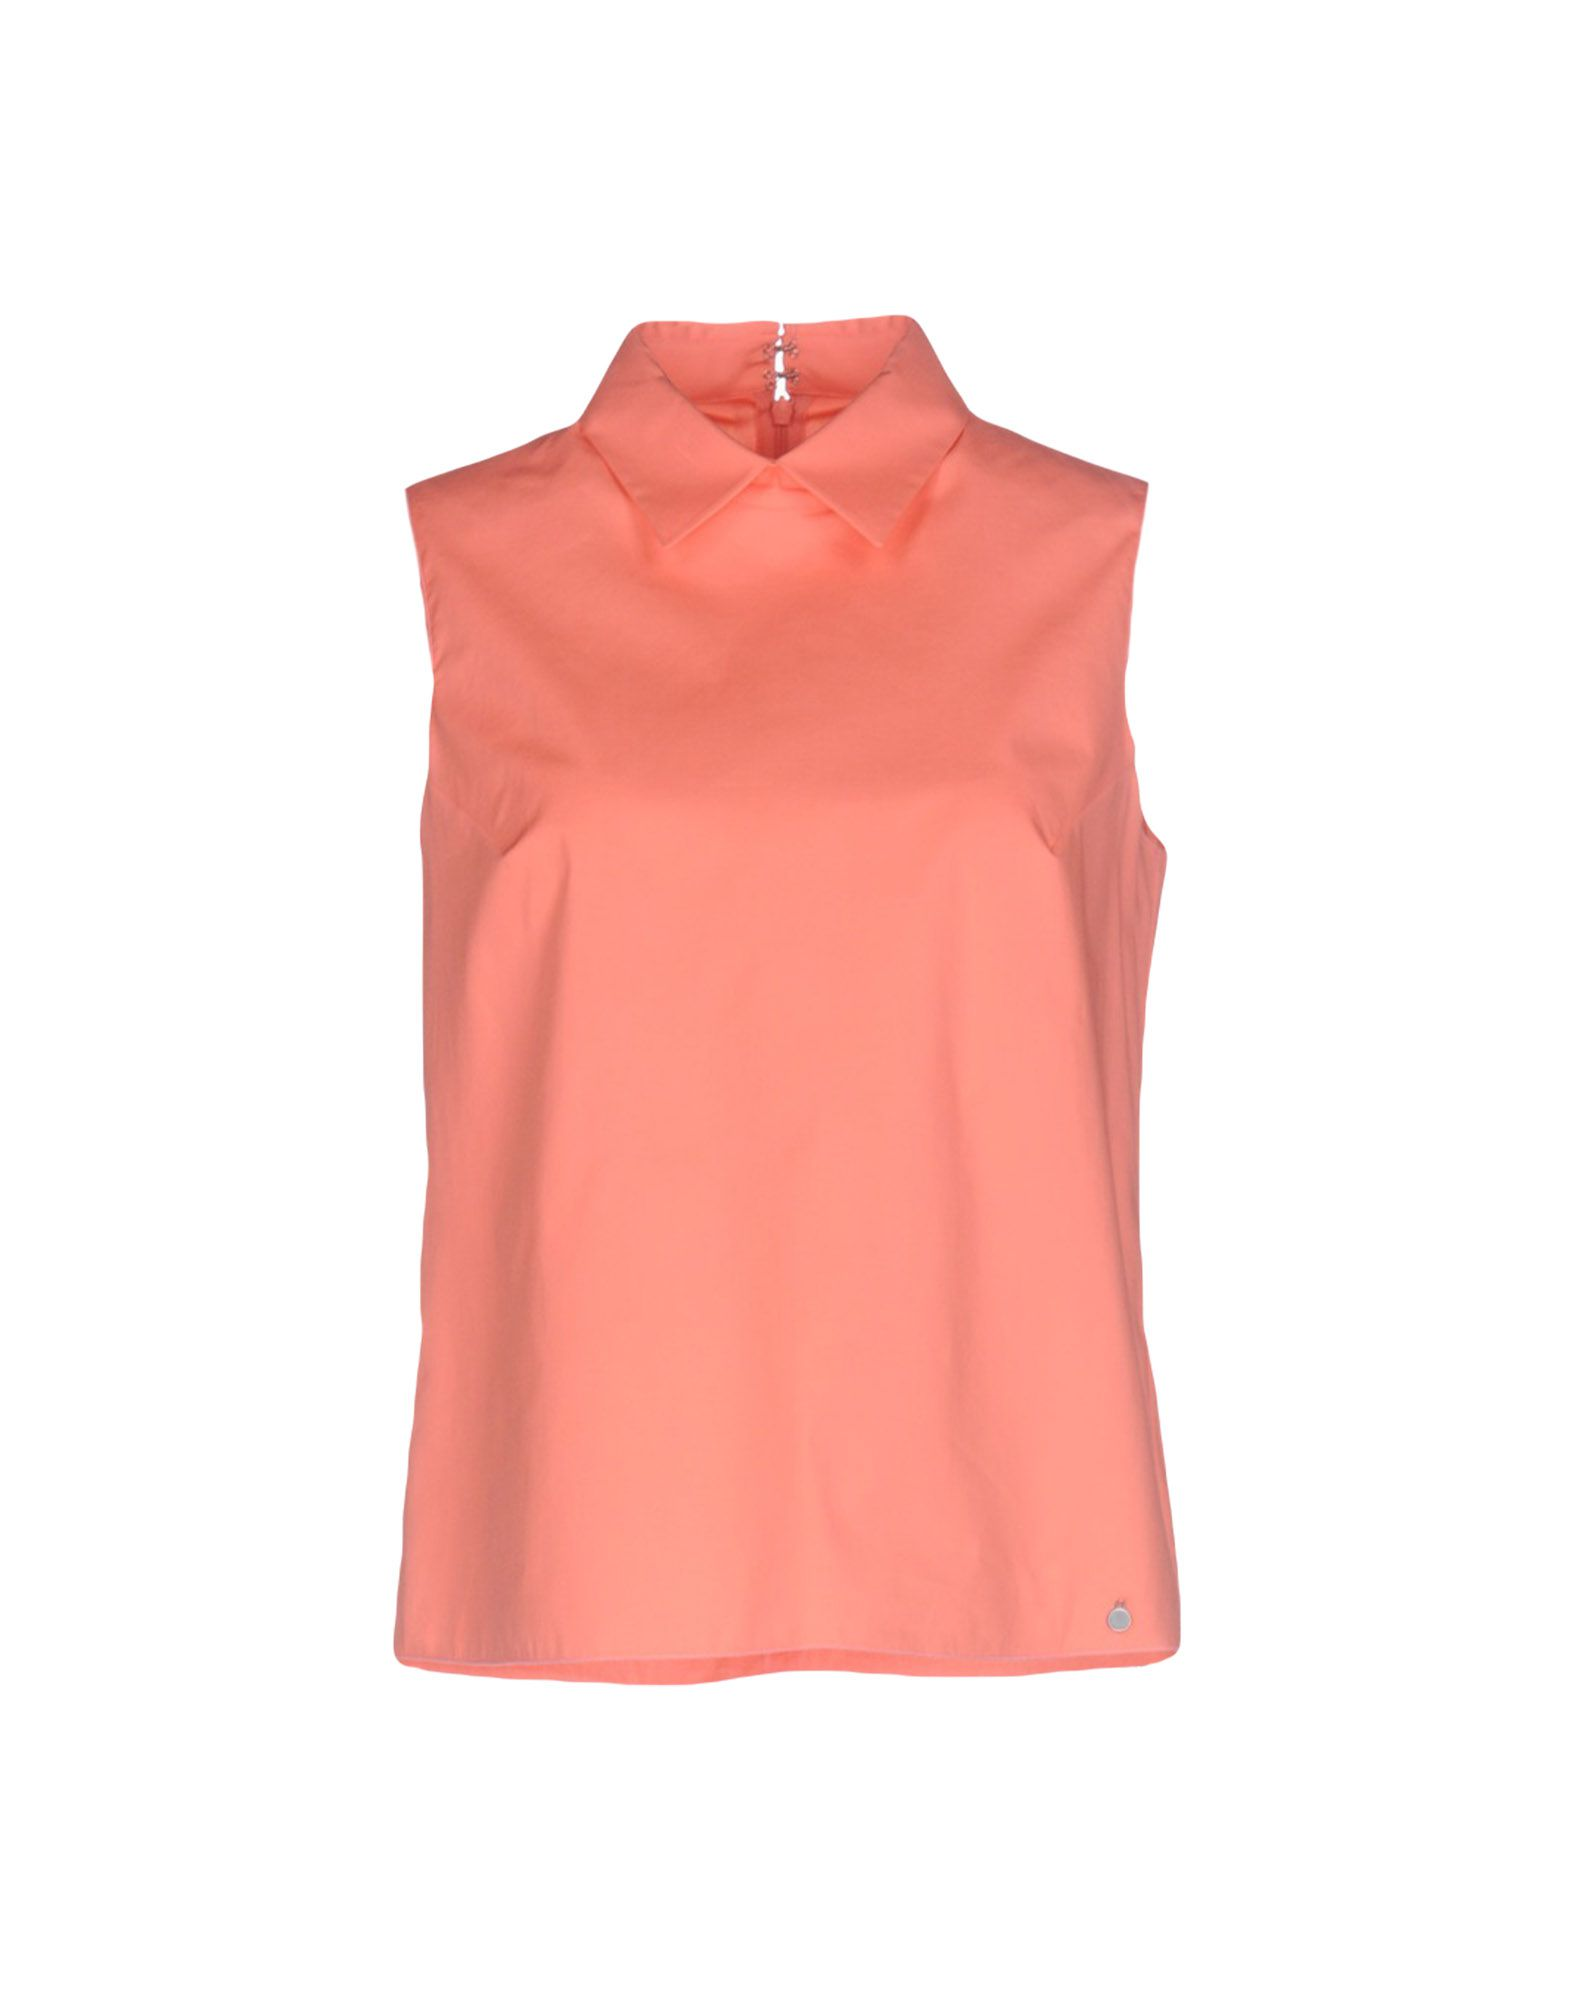 Top Jil Sander Navy Donna - Acquista online su 8TL8C